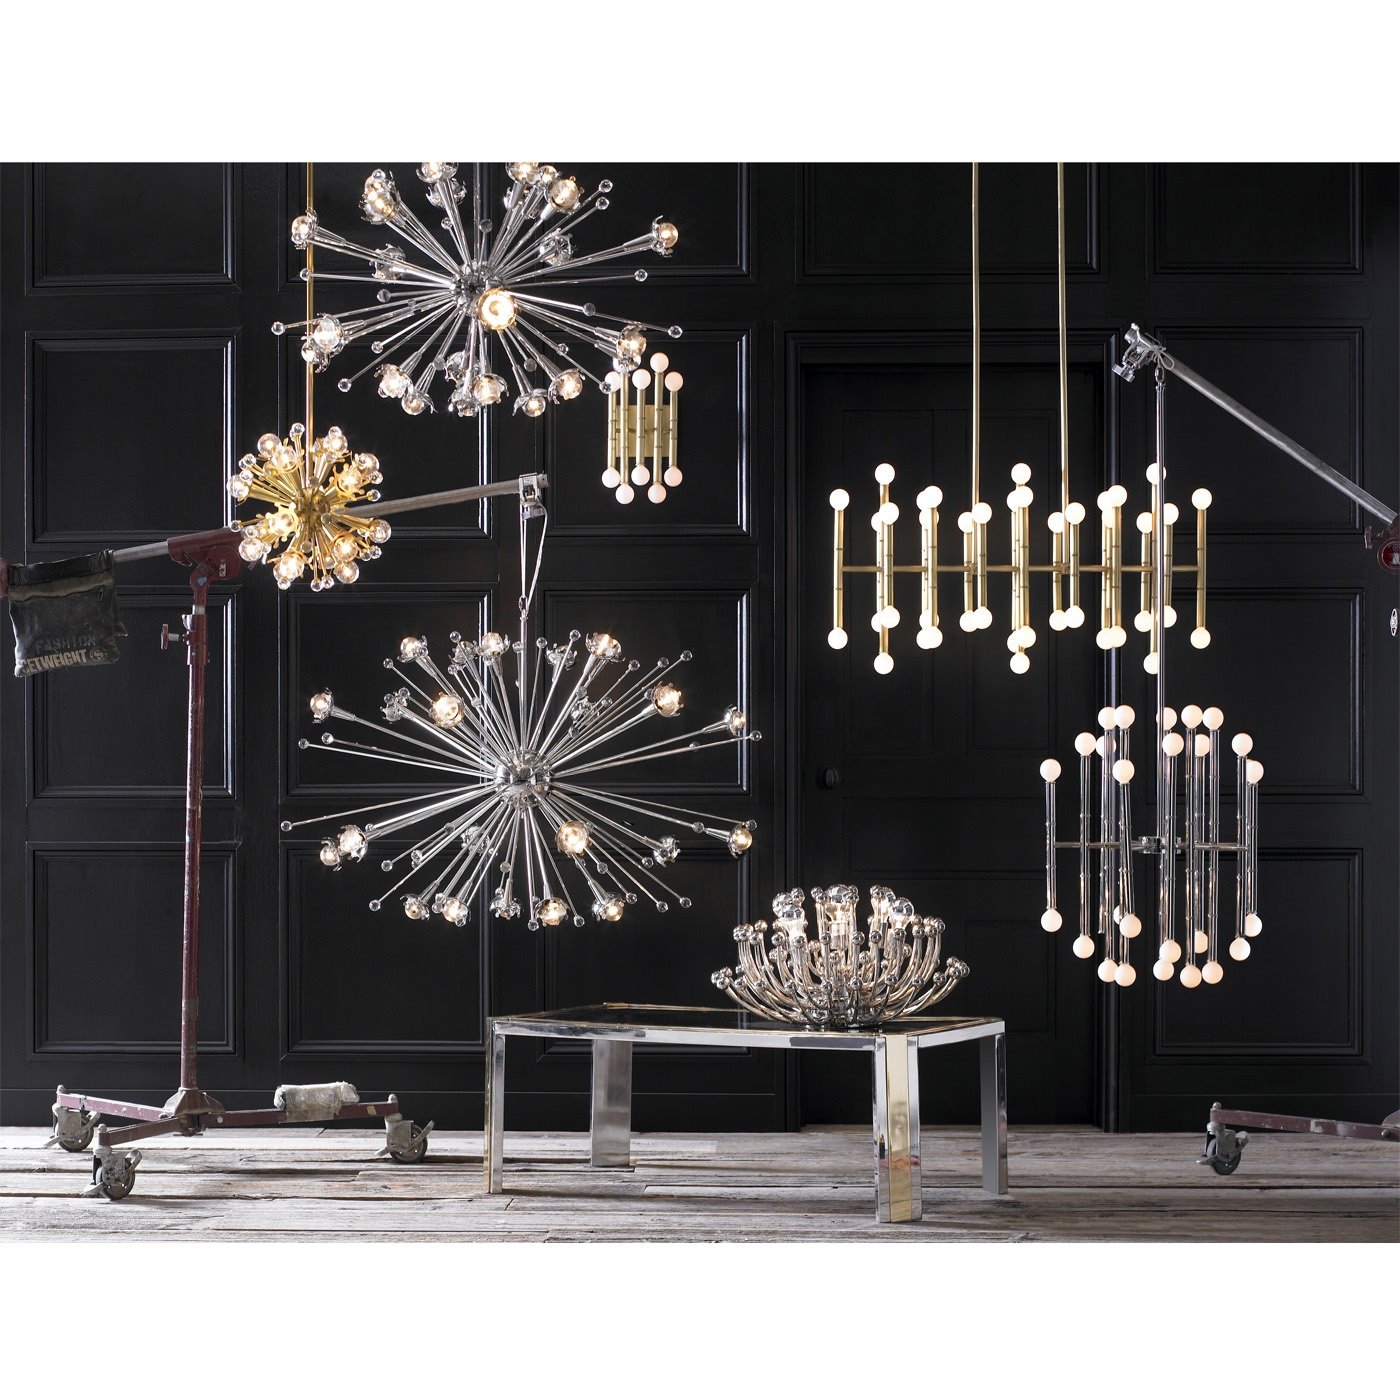 Giant Sputnik Chandelier Modern Lighting Jonathan Adler Throughout Giant Chandeliers (#7 of 12)